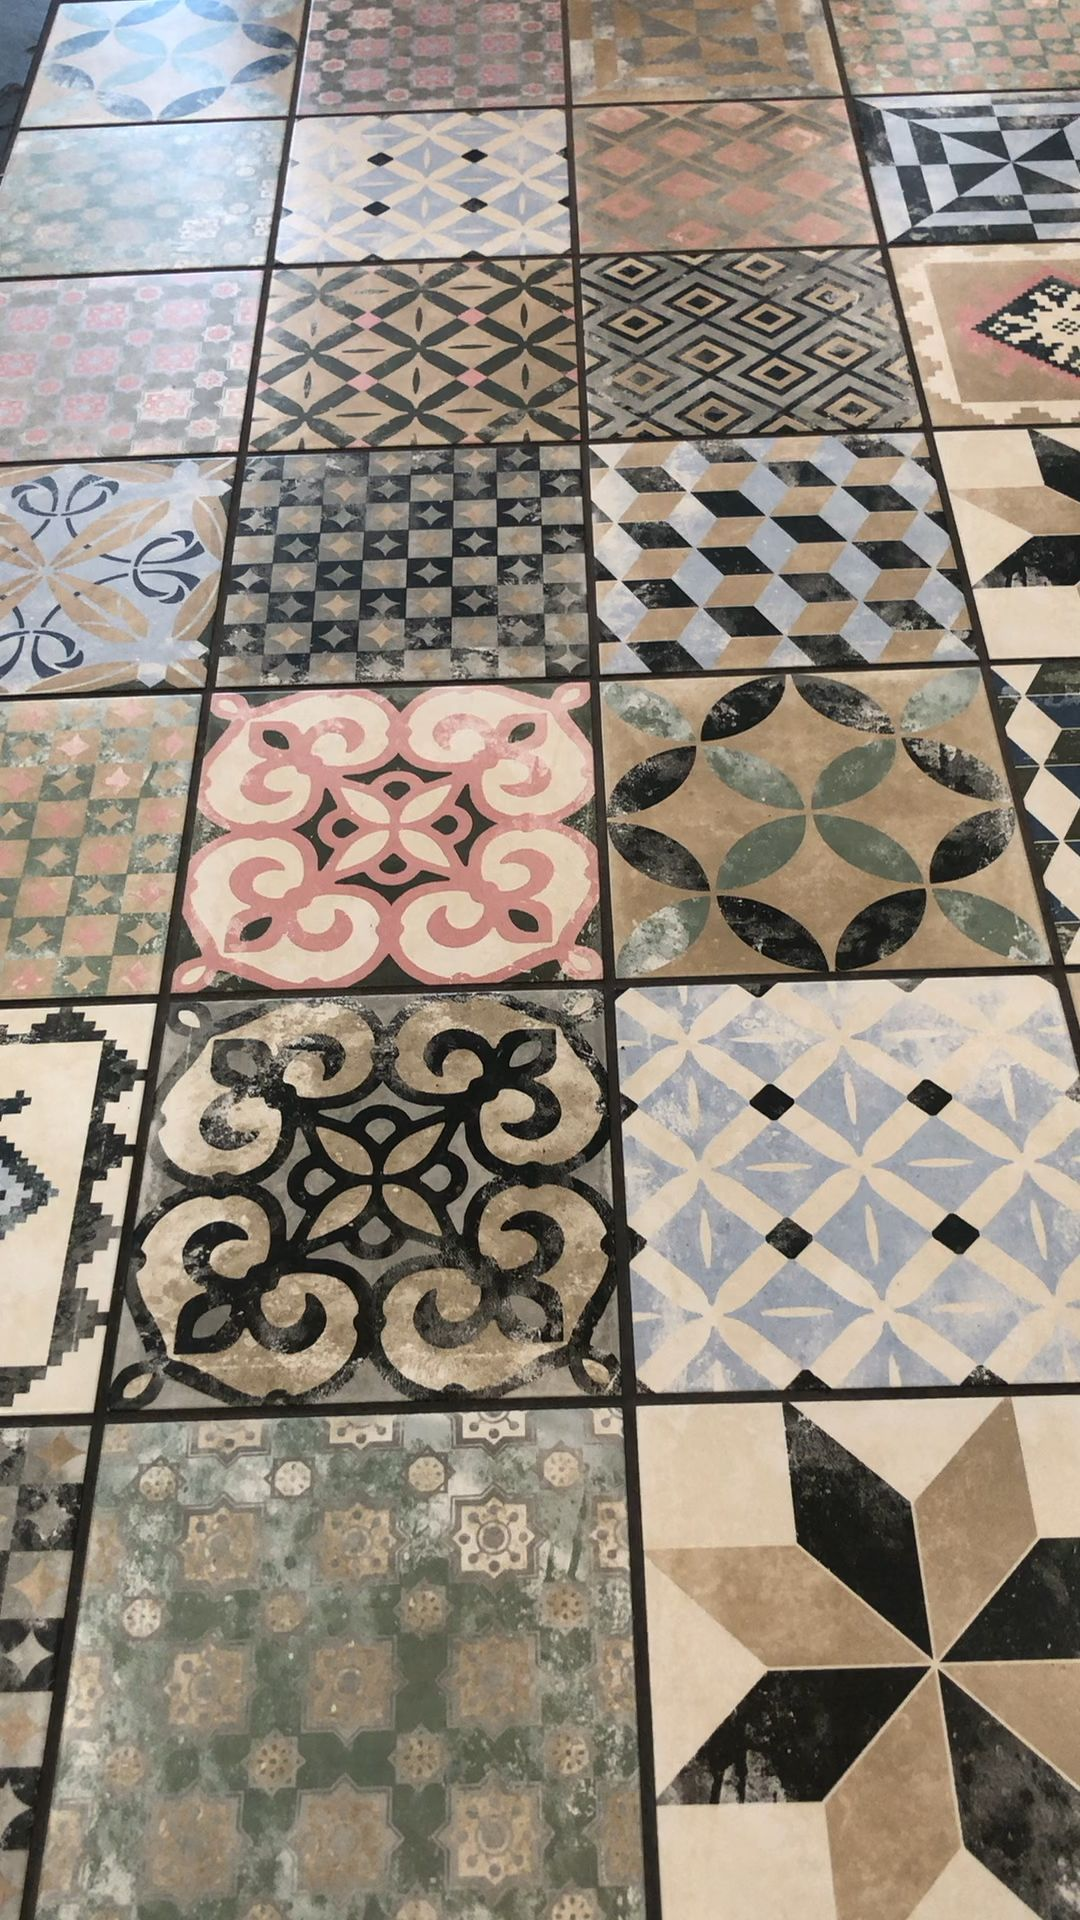 Nonna Sofia Mix Multicoloured And Various Patterned Decorative Tiles Floor Morrocan Floor Tiles In 2020 Wall And Floor Tiles Decorative Tile Patterned Floor Tiles